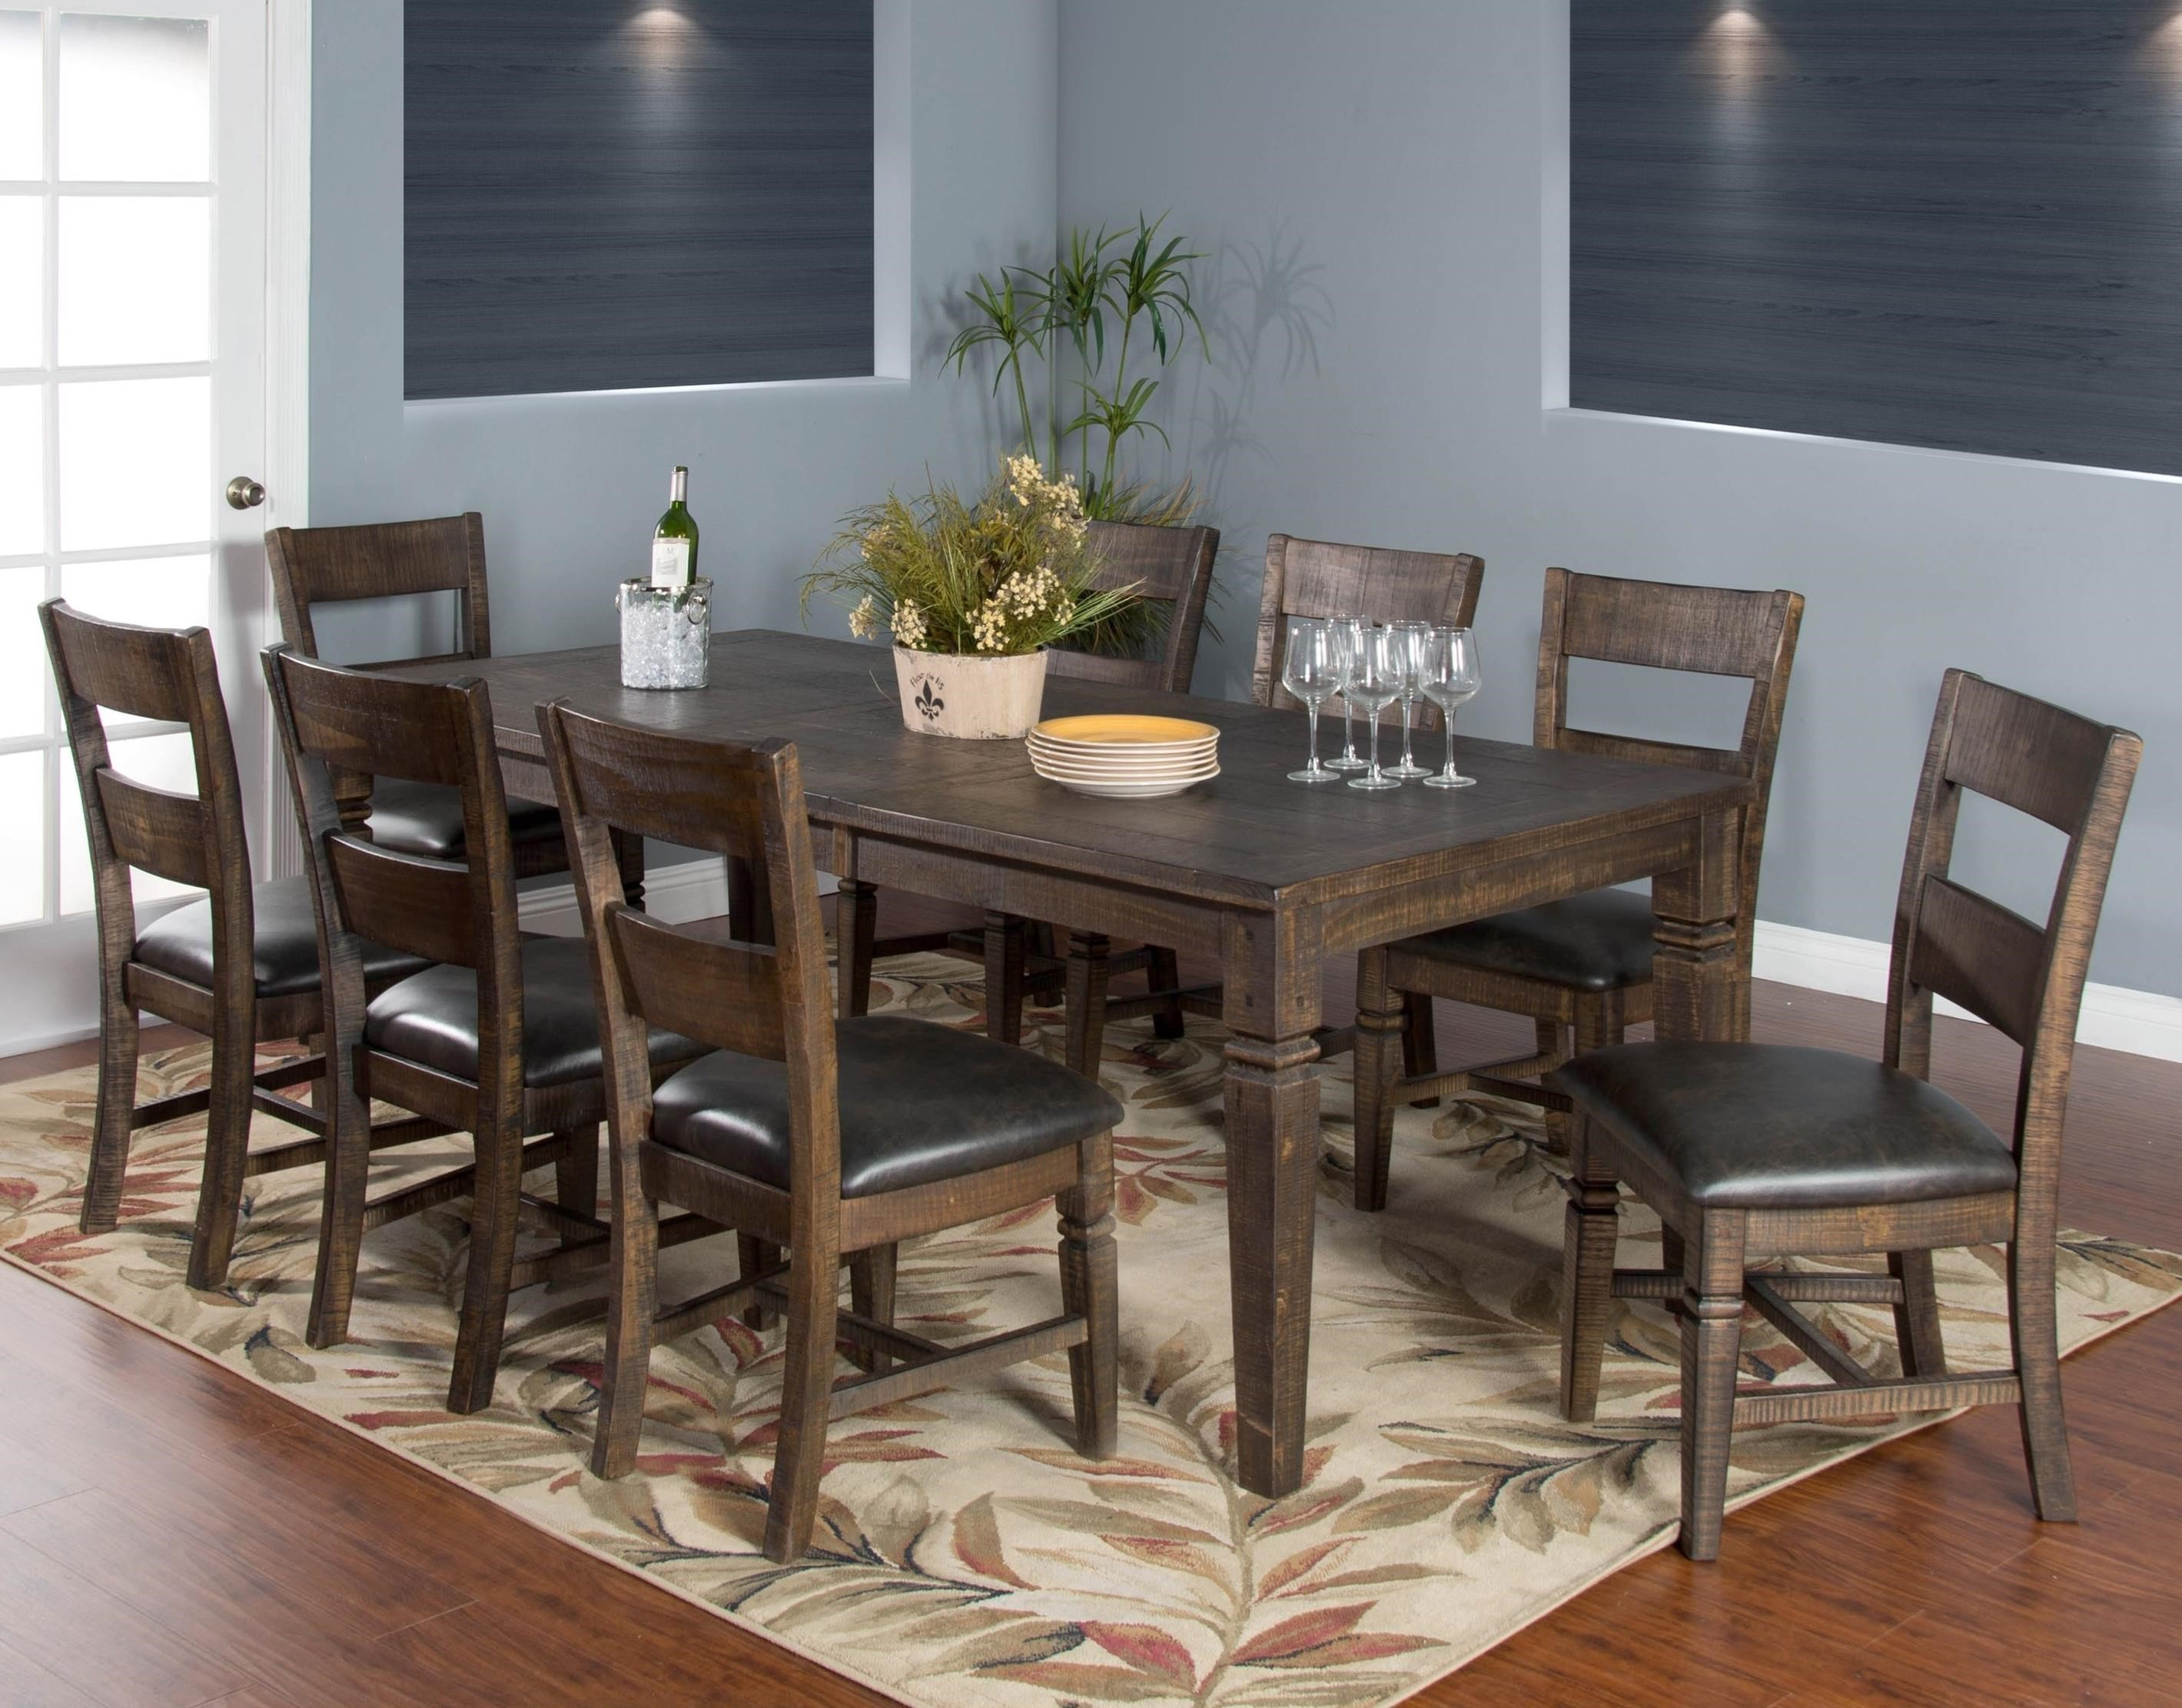 Dining Table Designs Homestead 9 Piece Extension Dining Table Set By Sunny Designs At Conlin S Furniture